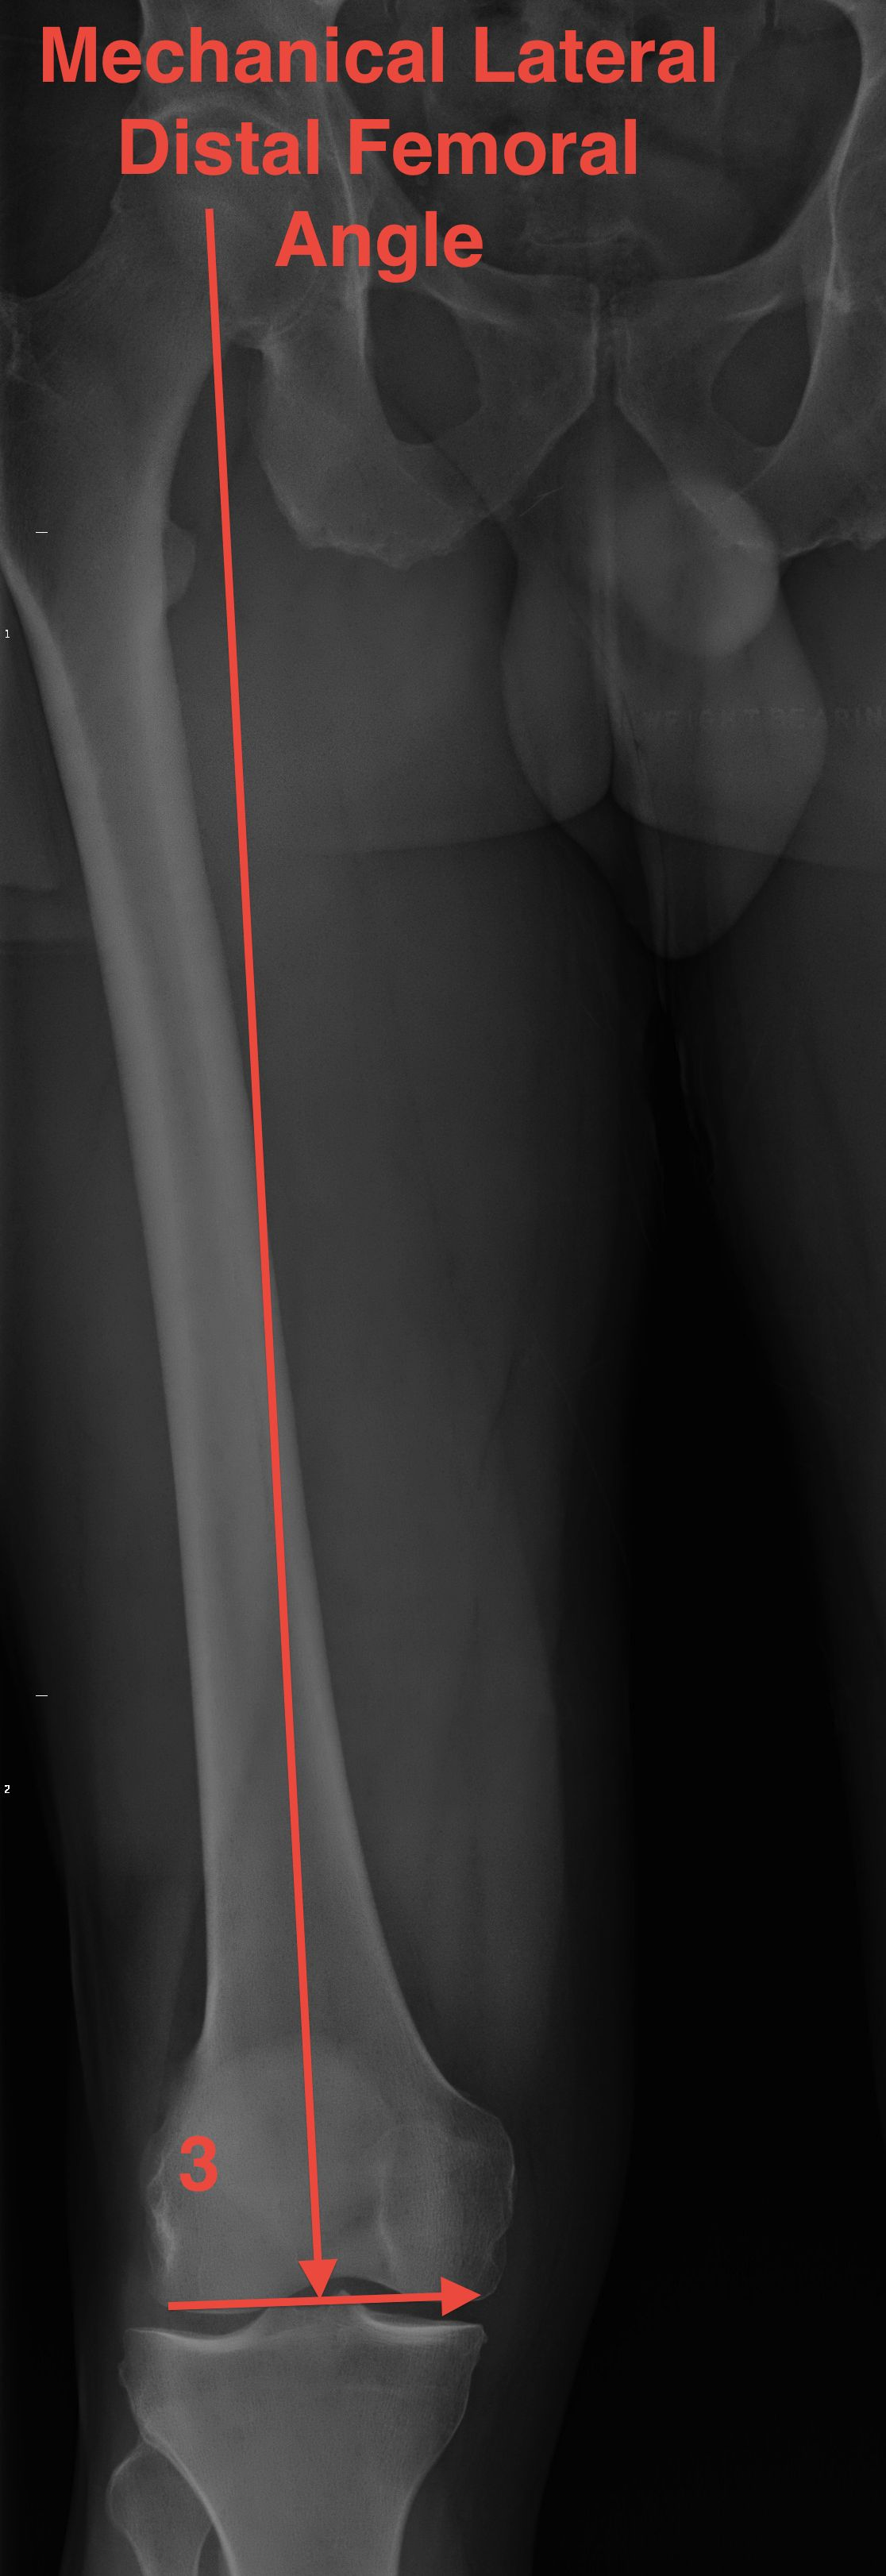 Mechanical Lateral Distal Femoral Angle